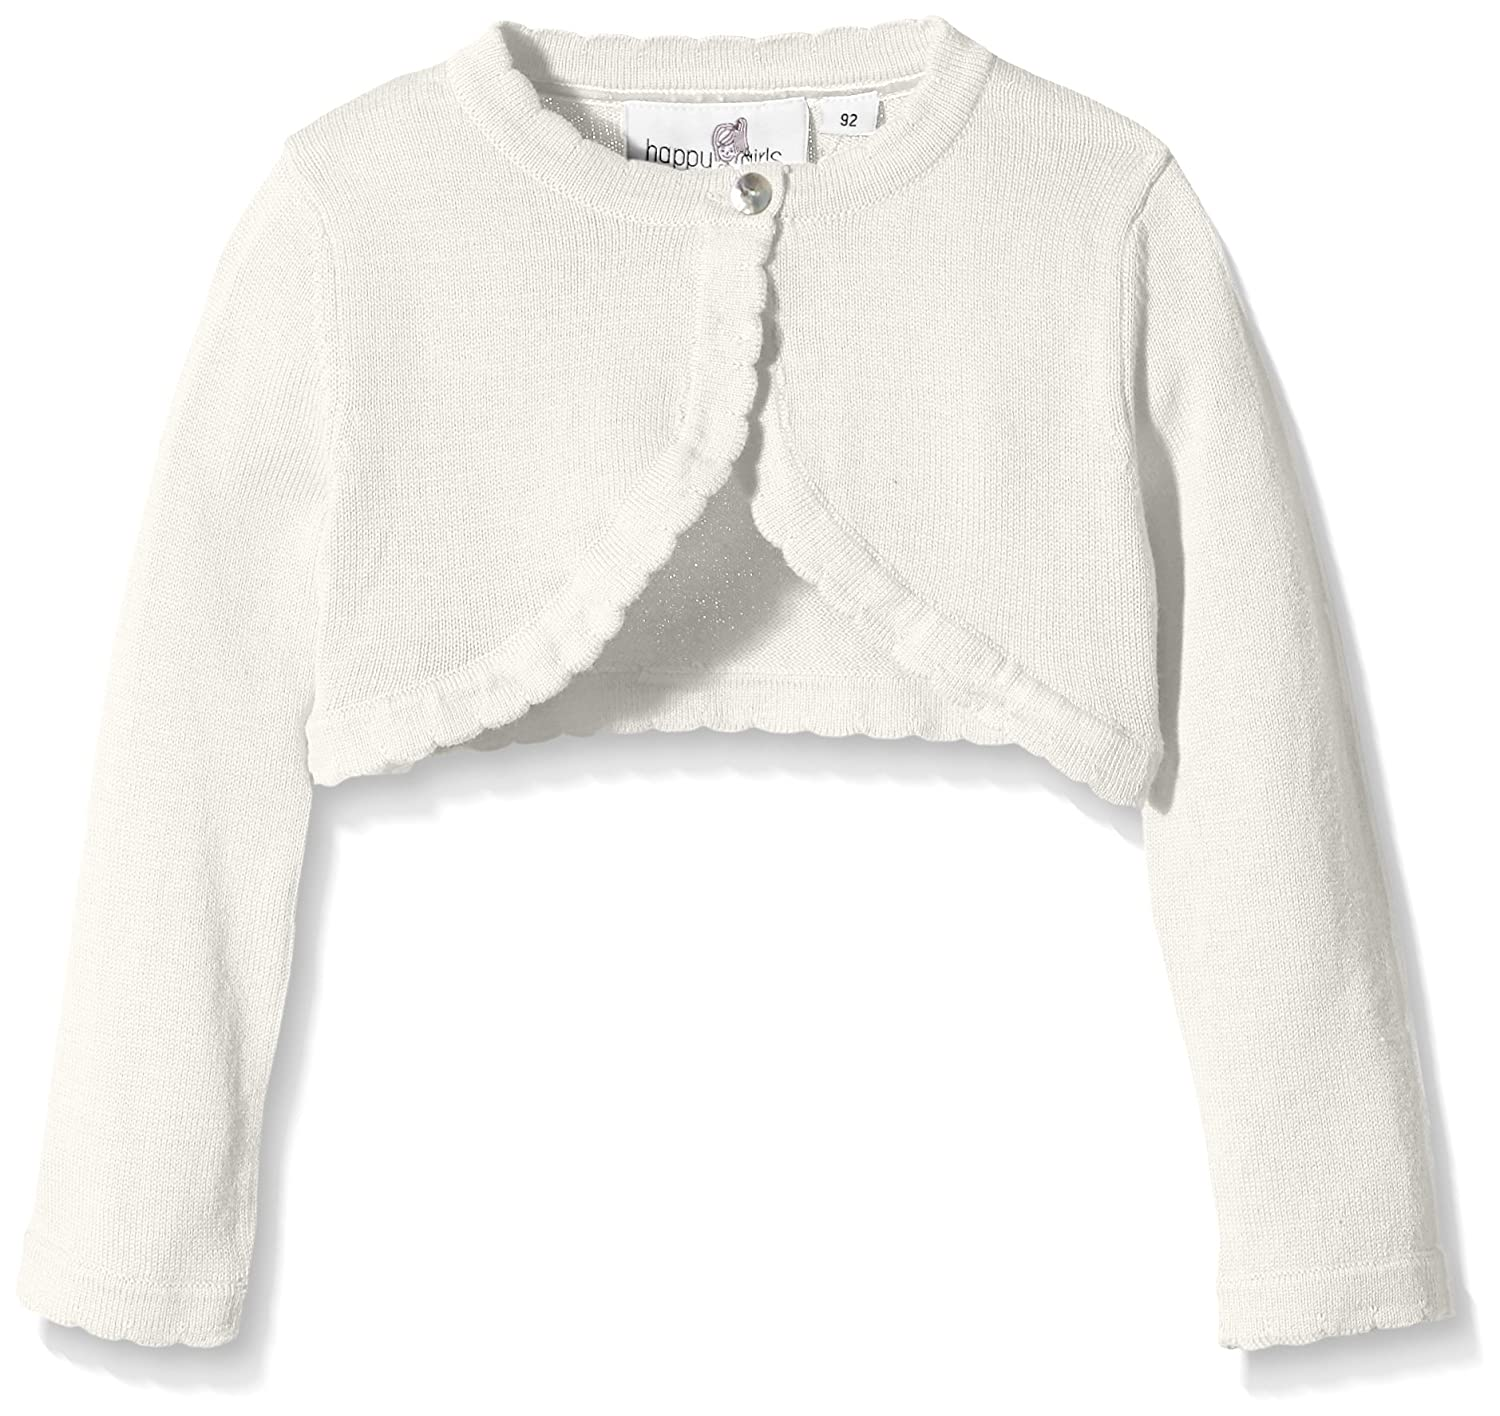 Happy Girls - Basic Bolero, Cardigan Bambina Eisend Kids e.K. 761313